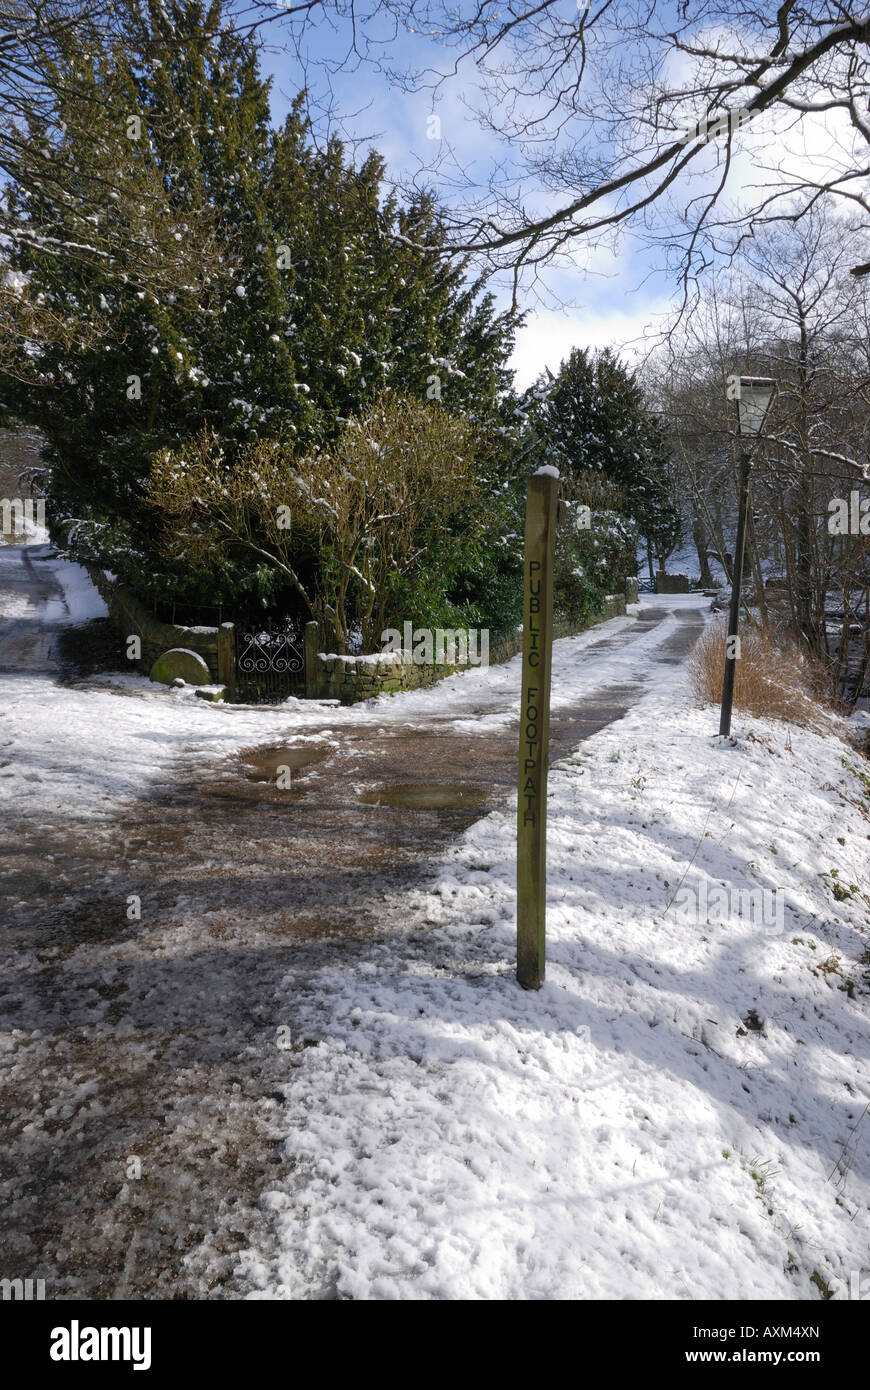 Footpath in Hayfield, Derbyshire, England in snow - Stock Image